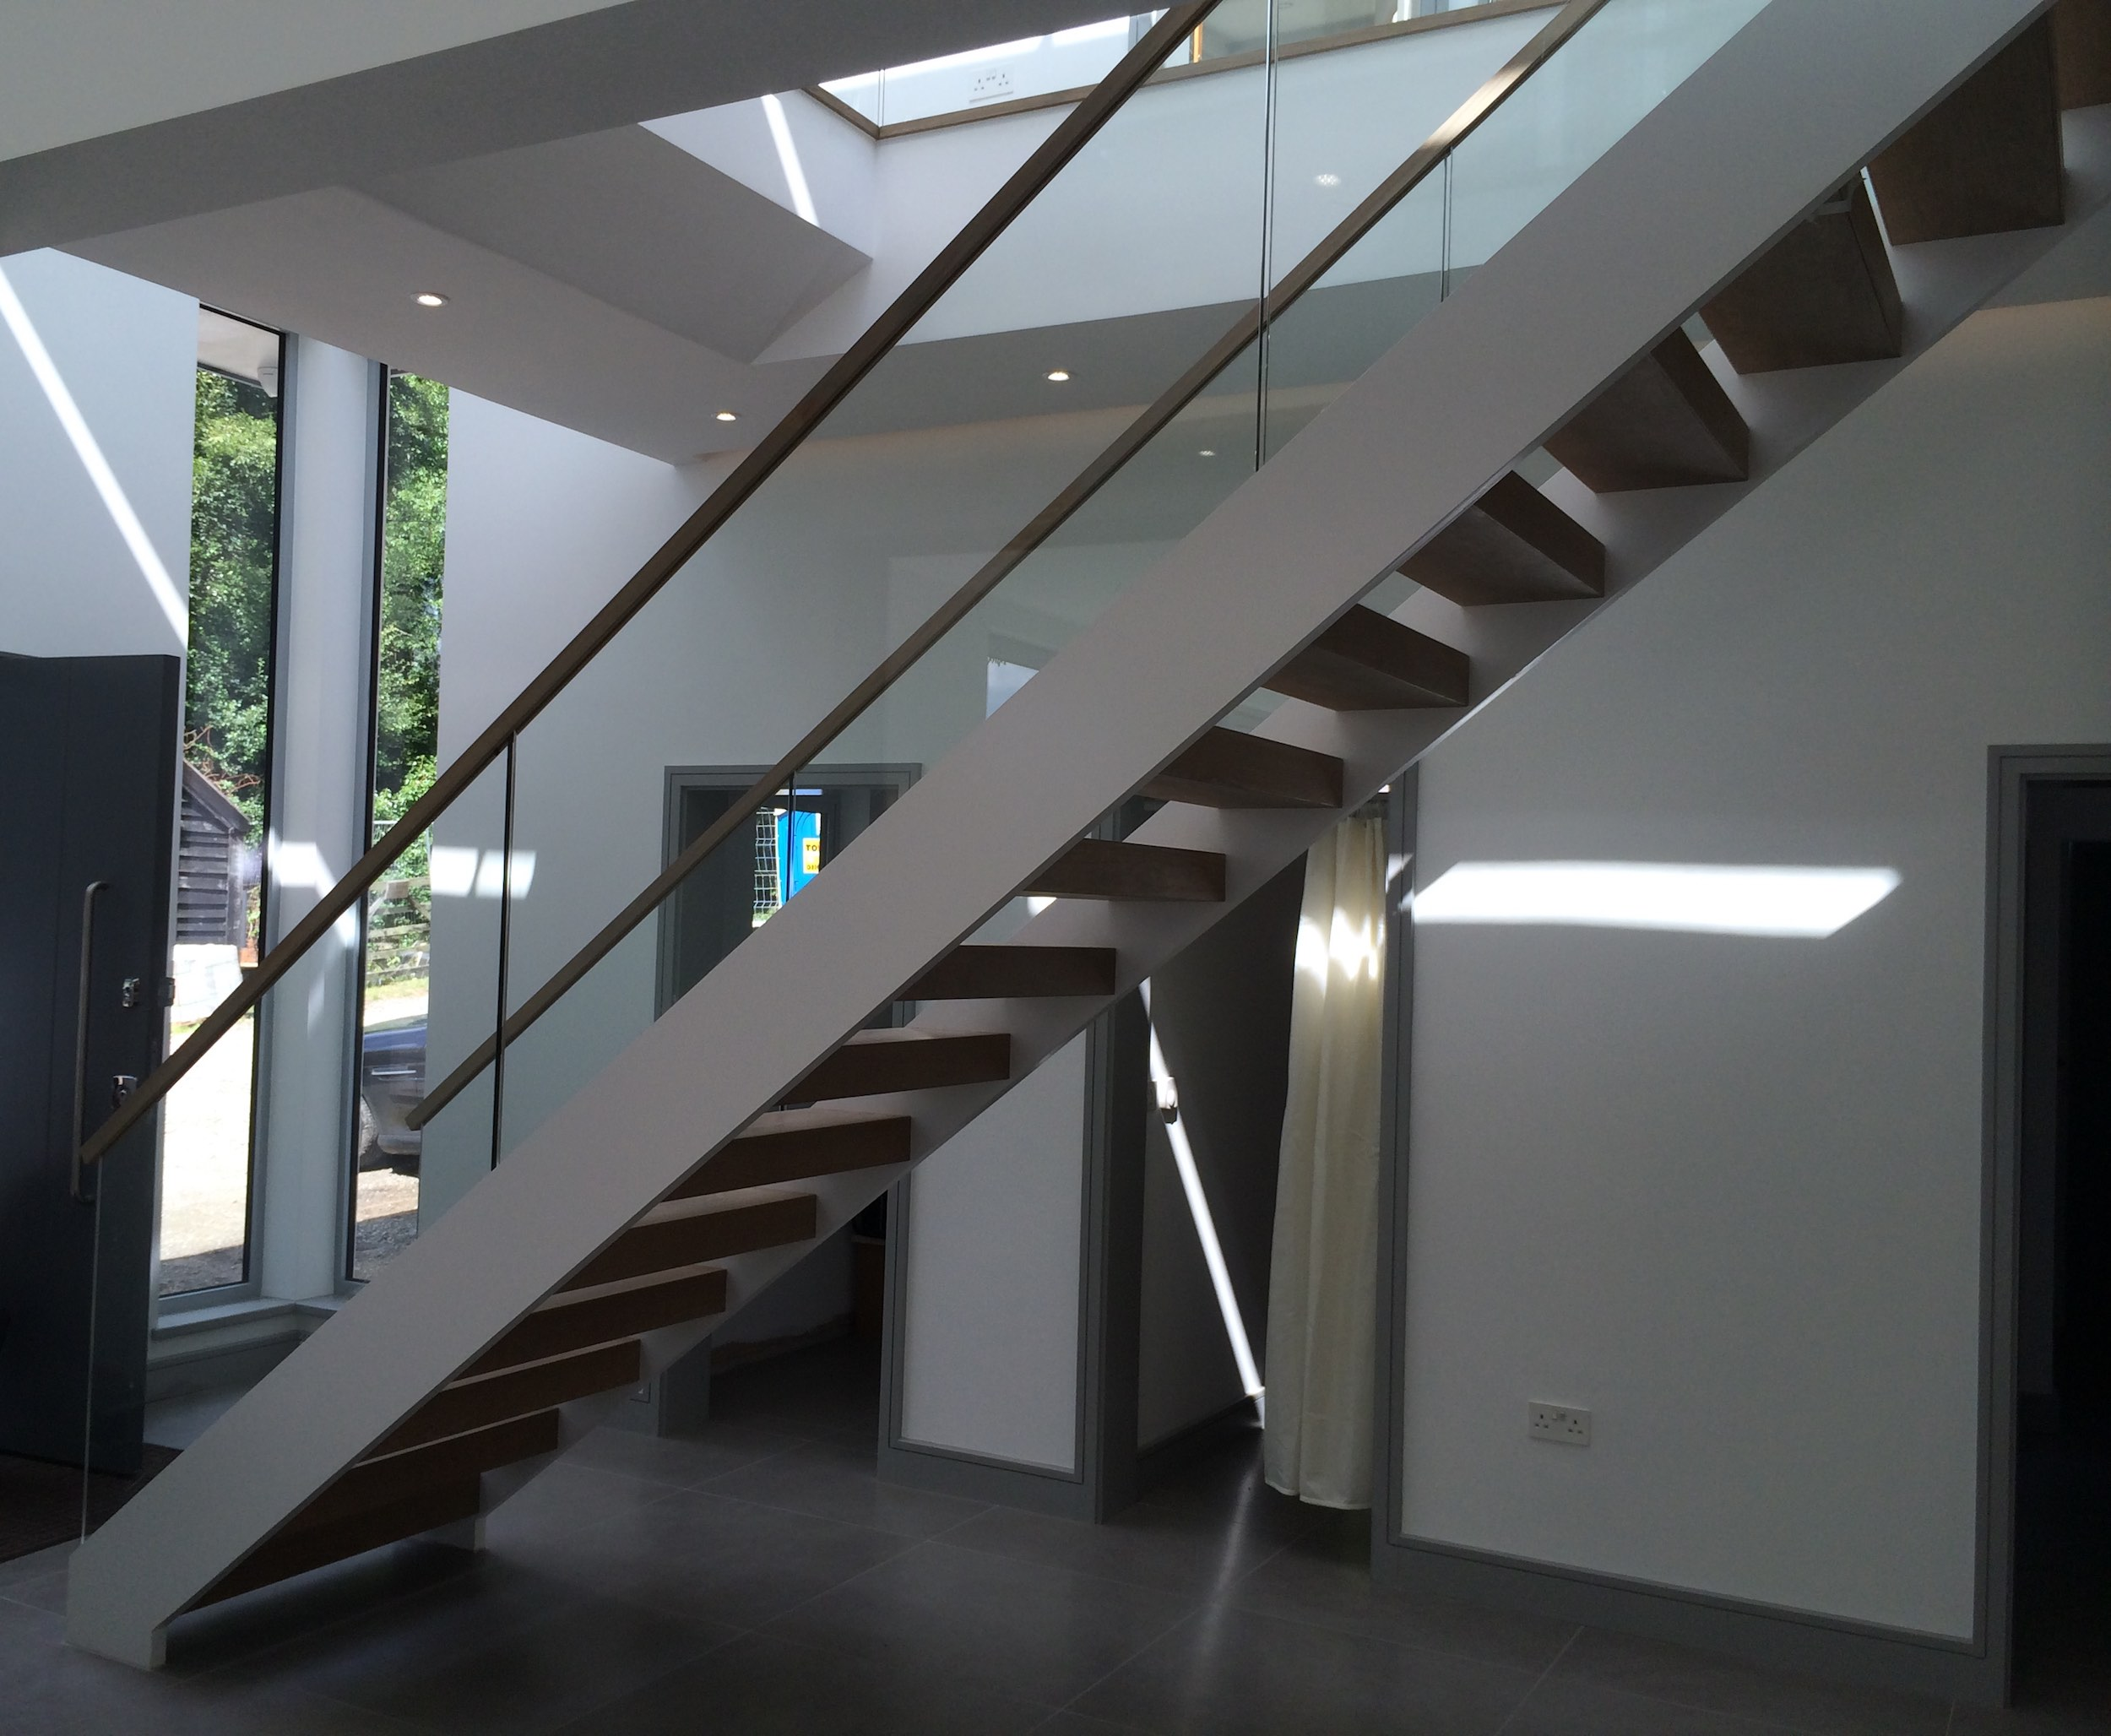 Steel stairs with wooden railing, glass balustrade, open risers and timber treads